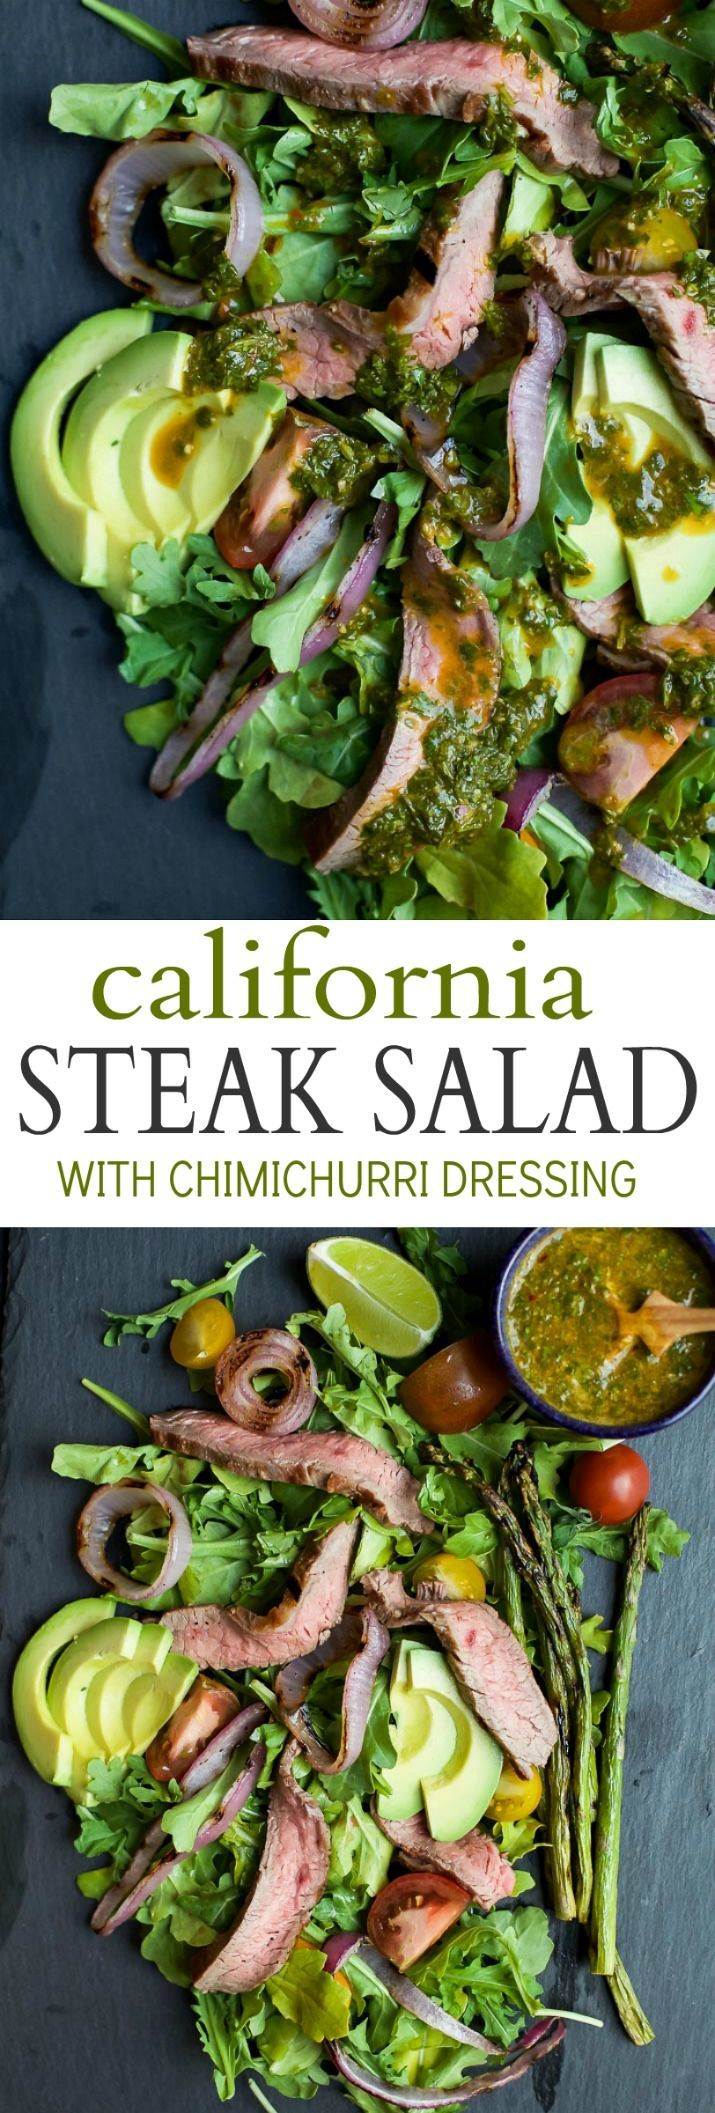 A paleo California Steak Salad filled with grilled onions, arugula, avocado, asparagus, charred Steak and covered in zesty Chimichurri Dressing.…